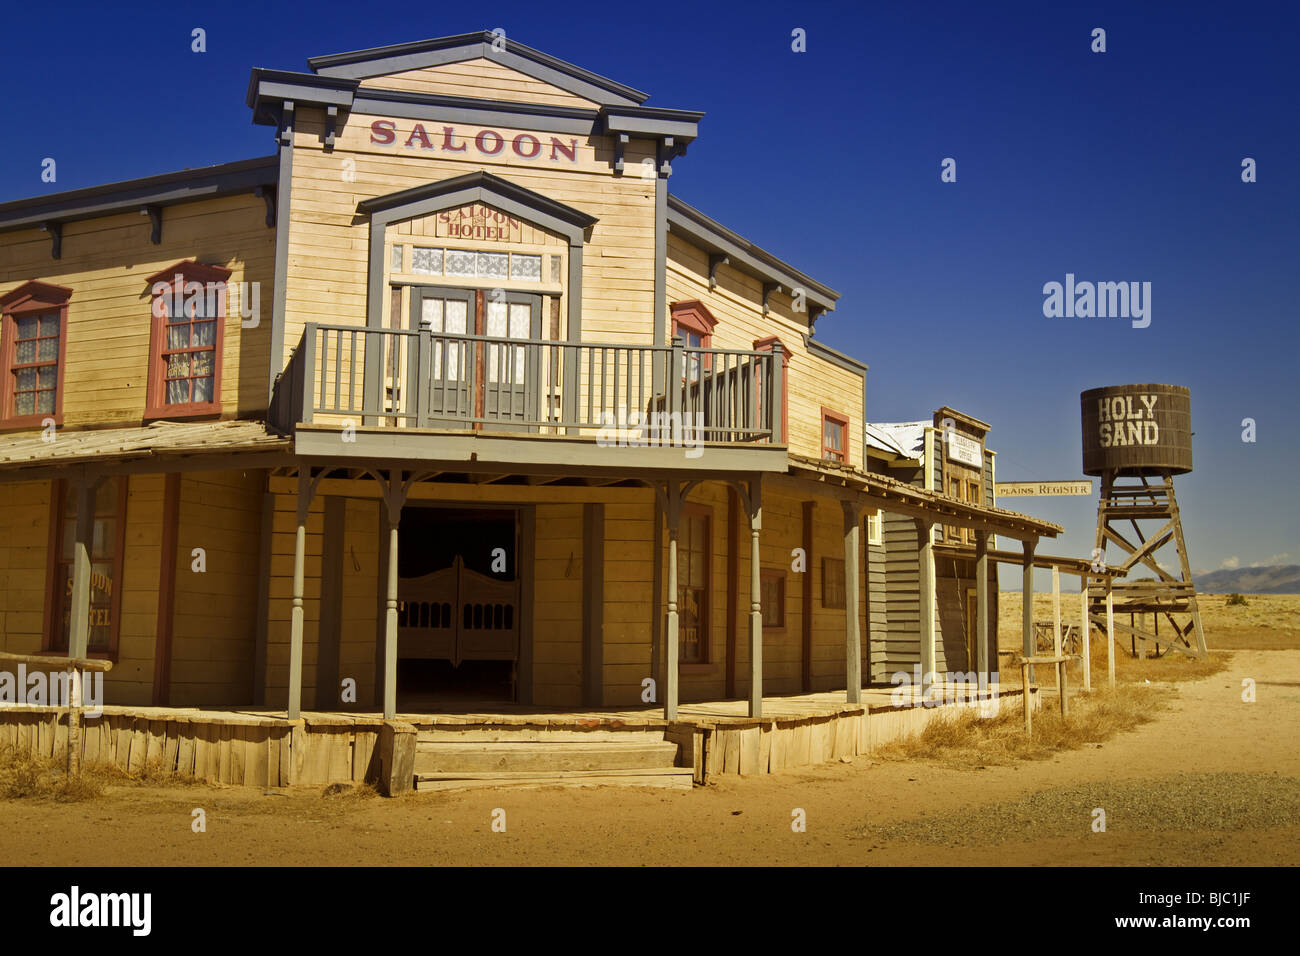 Saloon in western town, which is a permanent and closed movie/TV set outside Santa Fe, New Mexico. Horizontal orientation - Stock Image